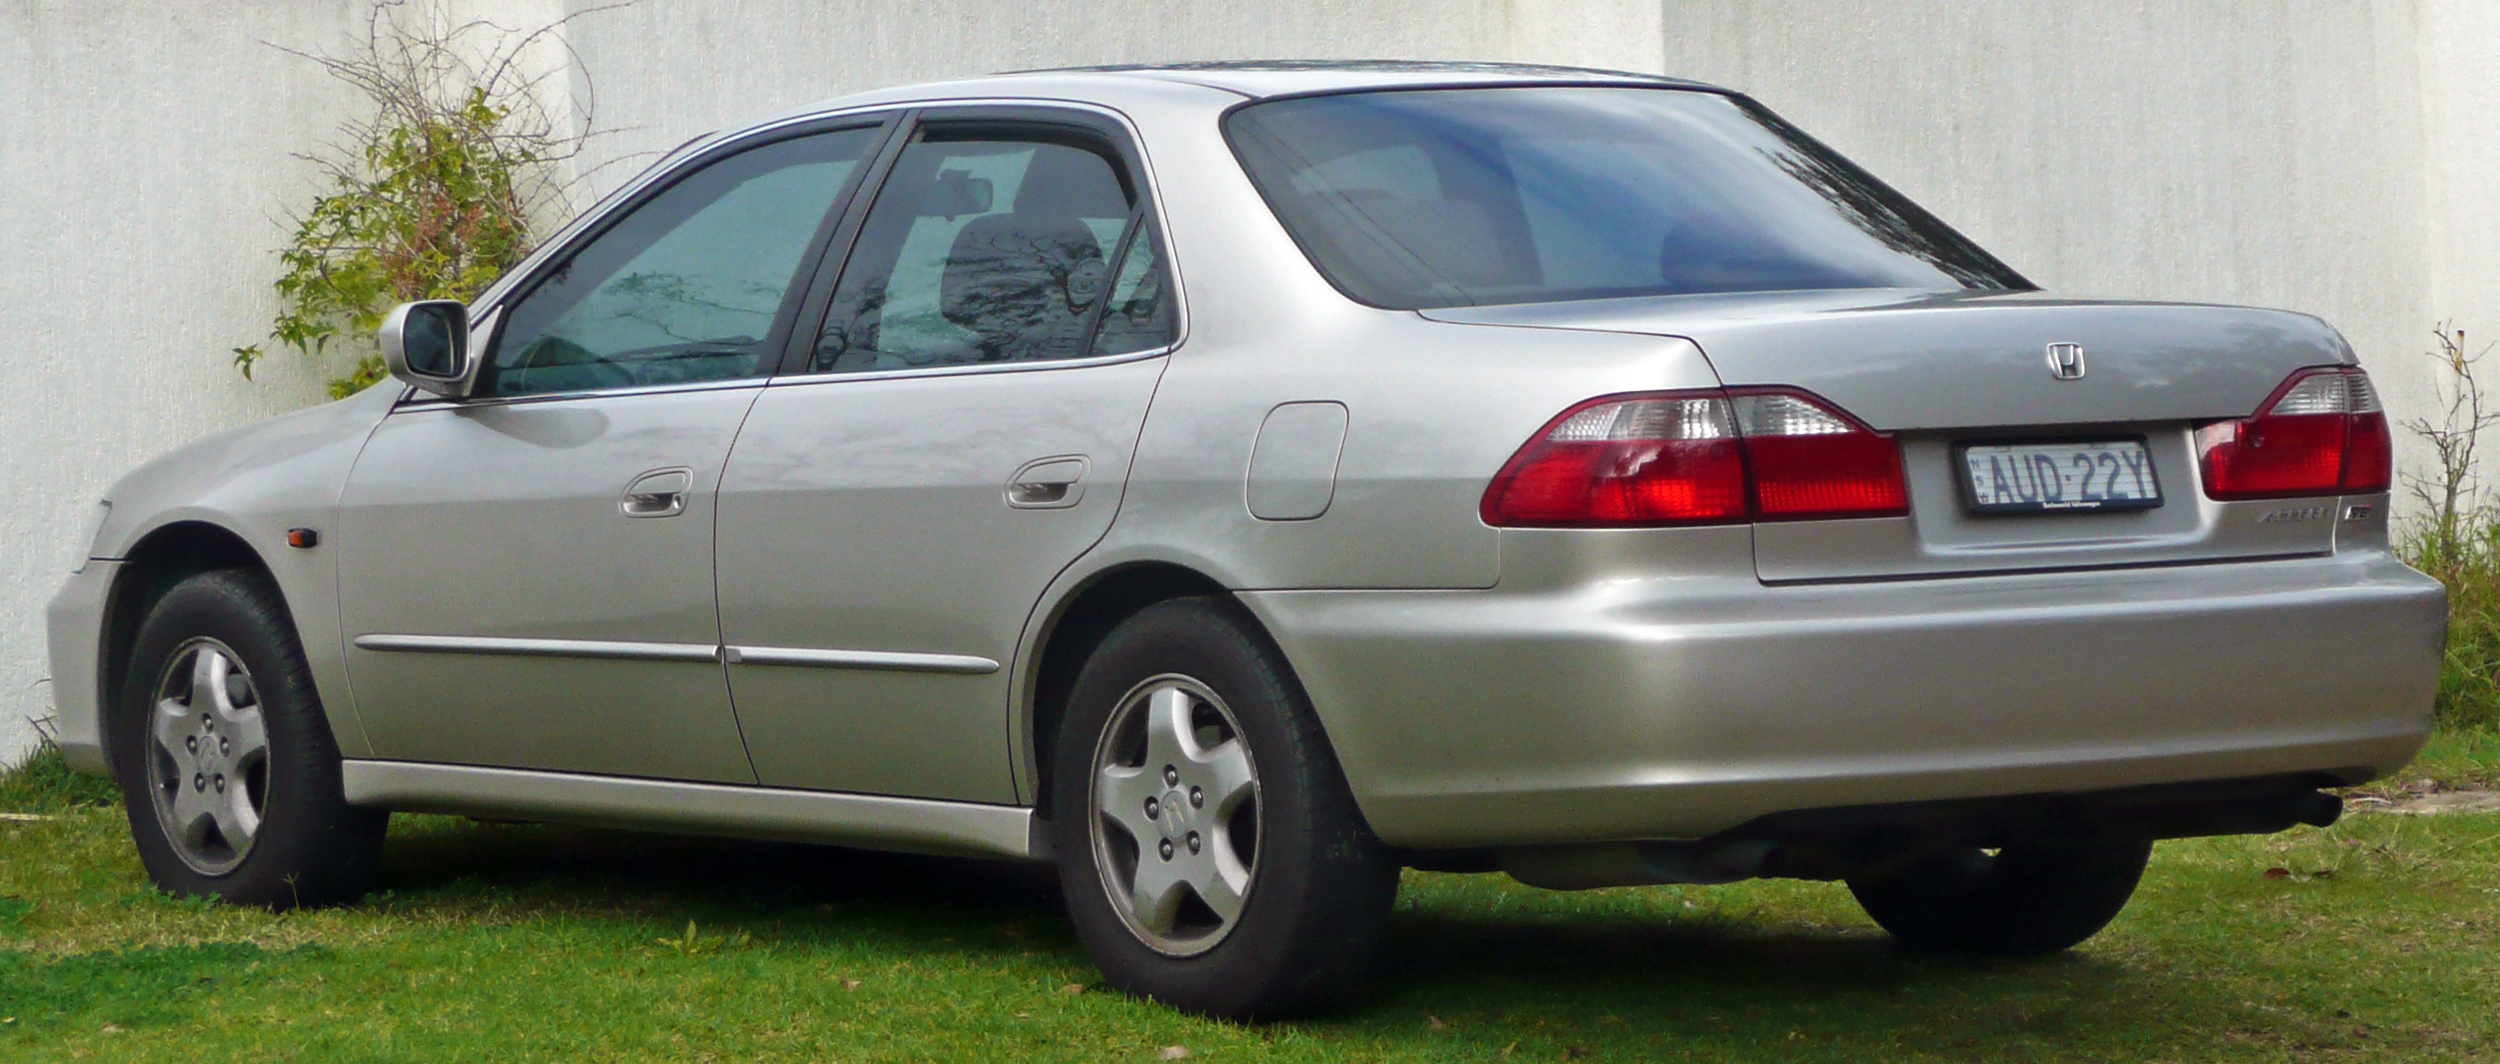 File:1997-2001 Honda Accord V6 sedan 02.jpg